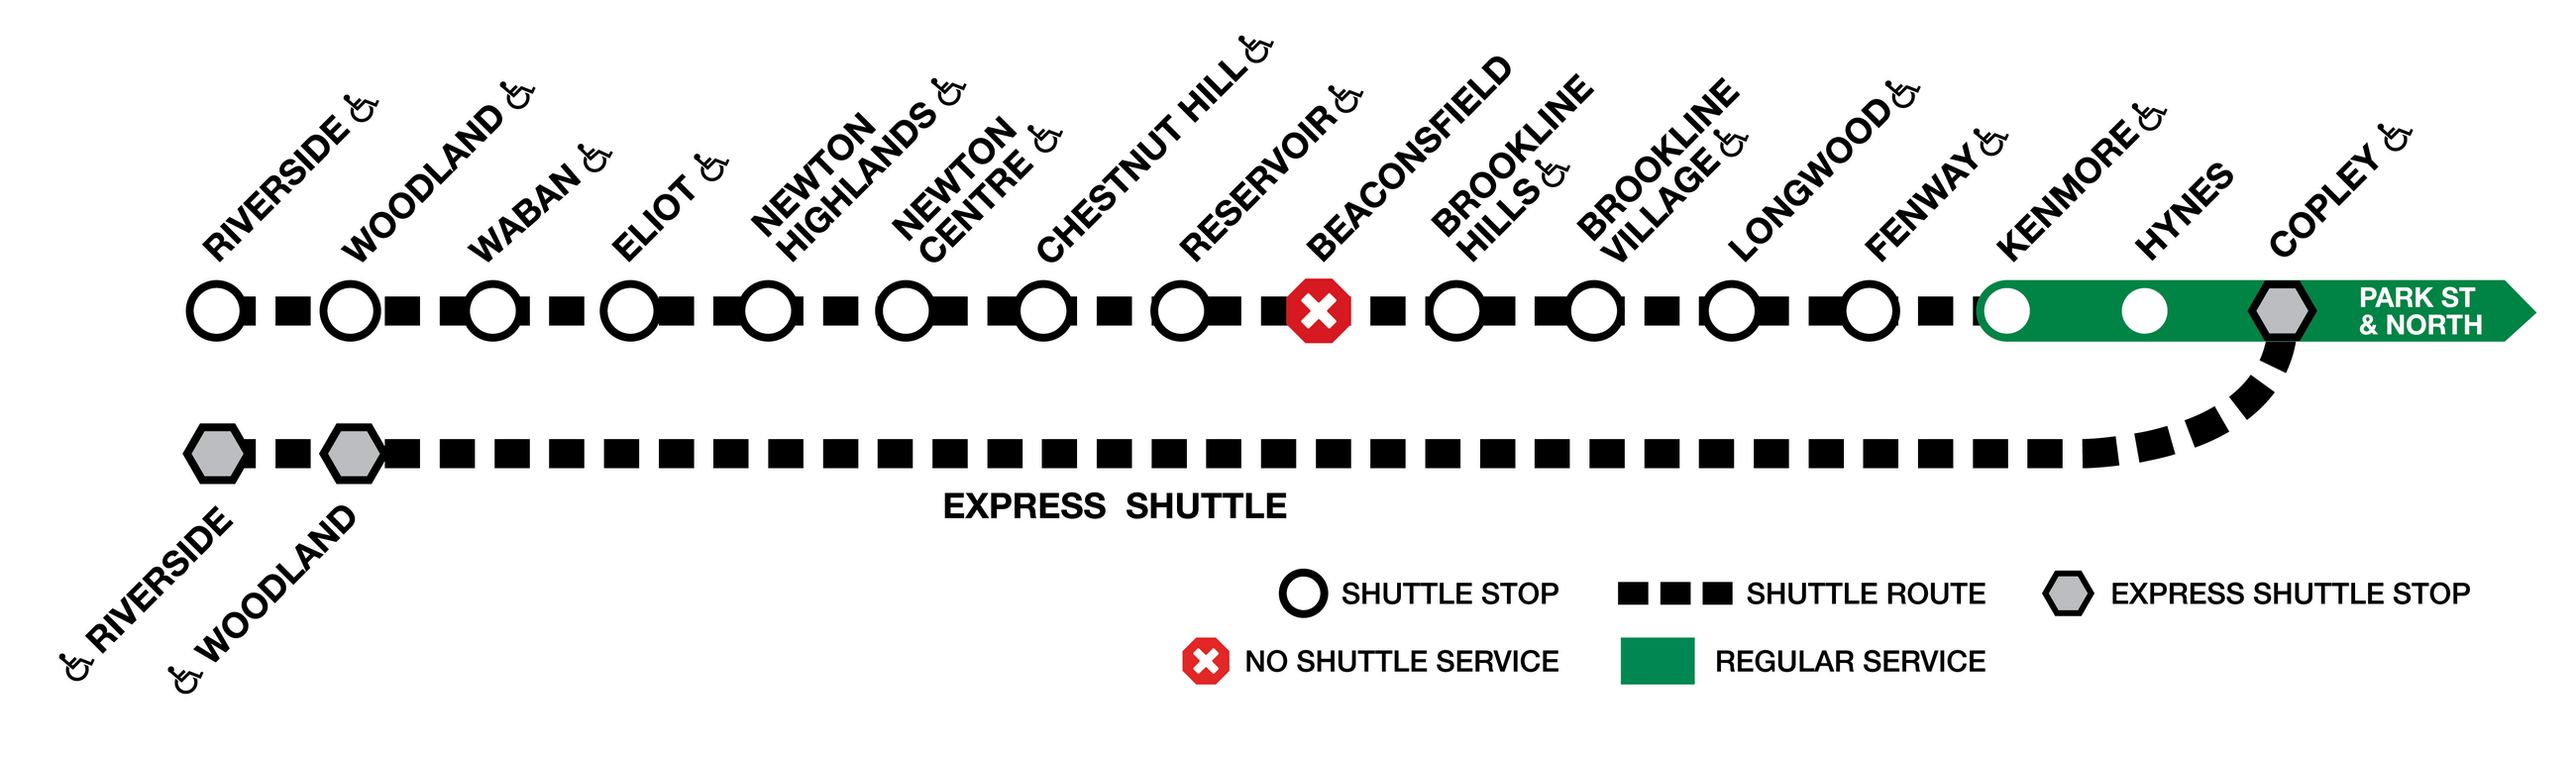 Diagram of the Green Line D branch, showing local shuttle stops between Riverside and Kenmore, and express shuttle stops at Riverside, Woodland, and Copley. No service at Beaconsfield.